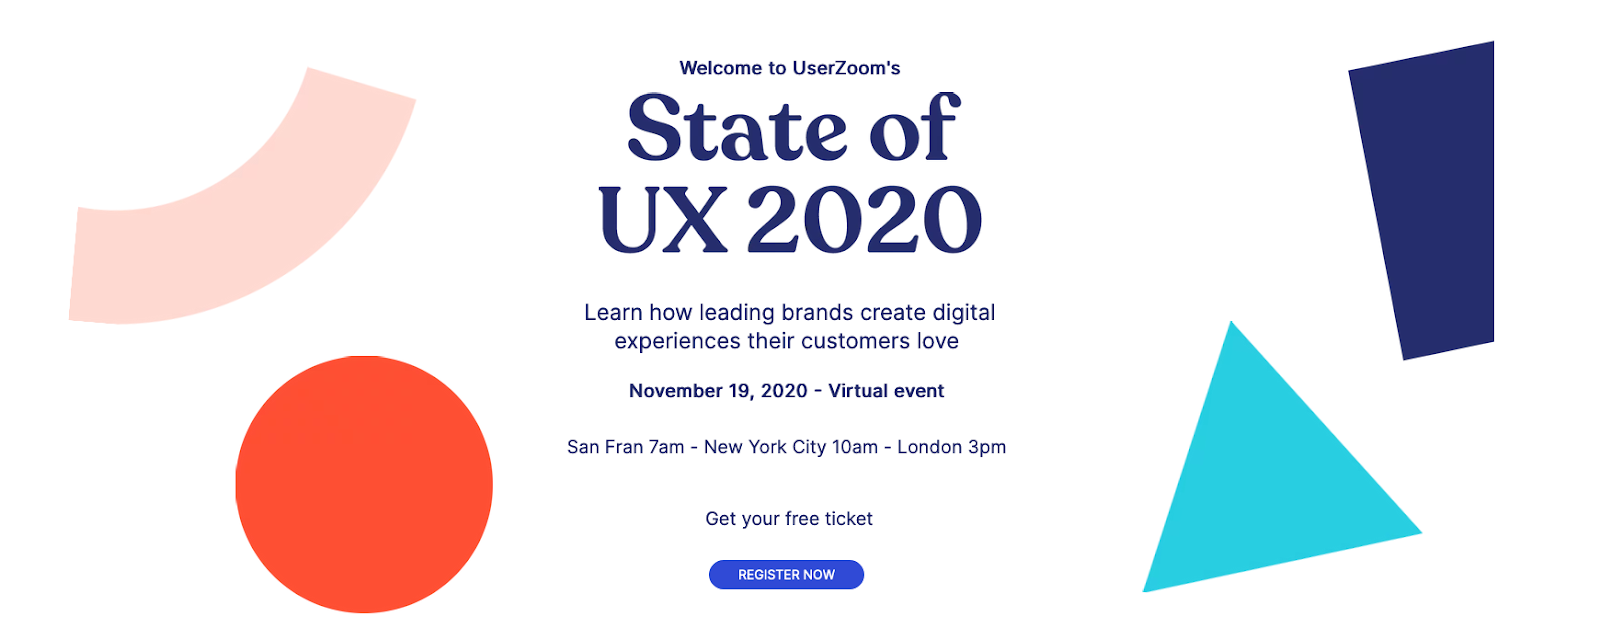 State of UX 2020 banner with event info and colorful shapes.